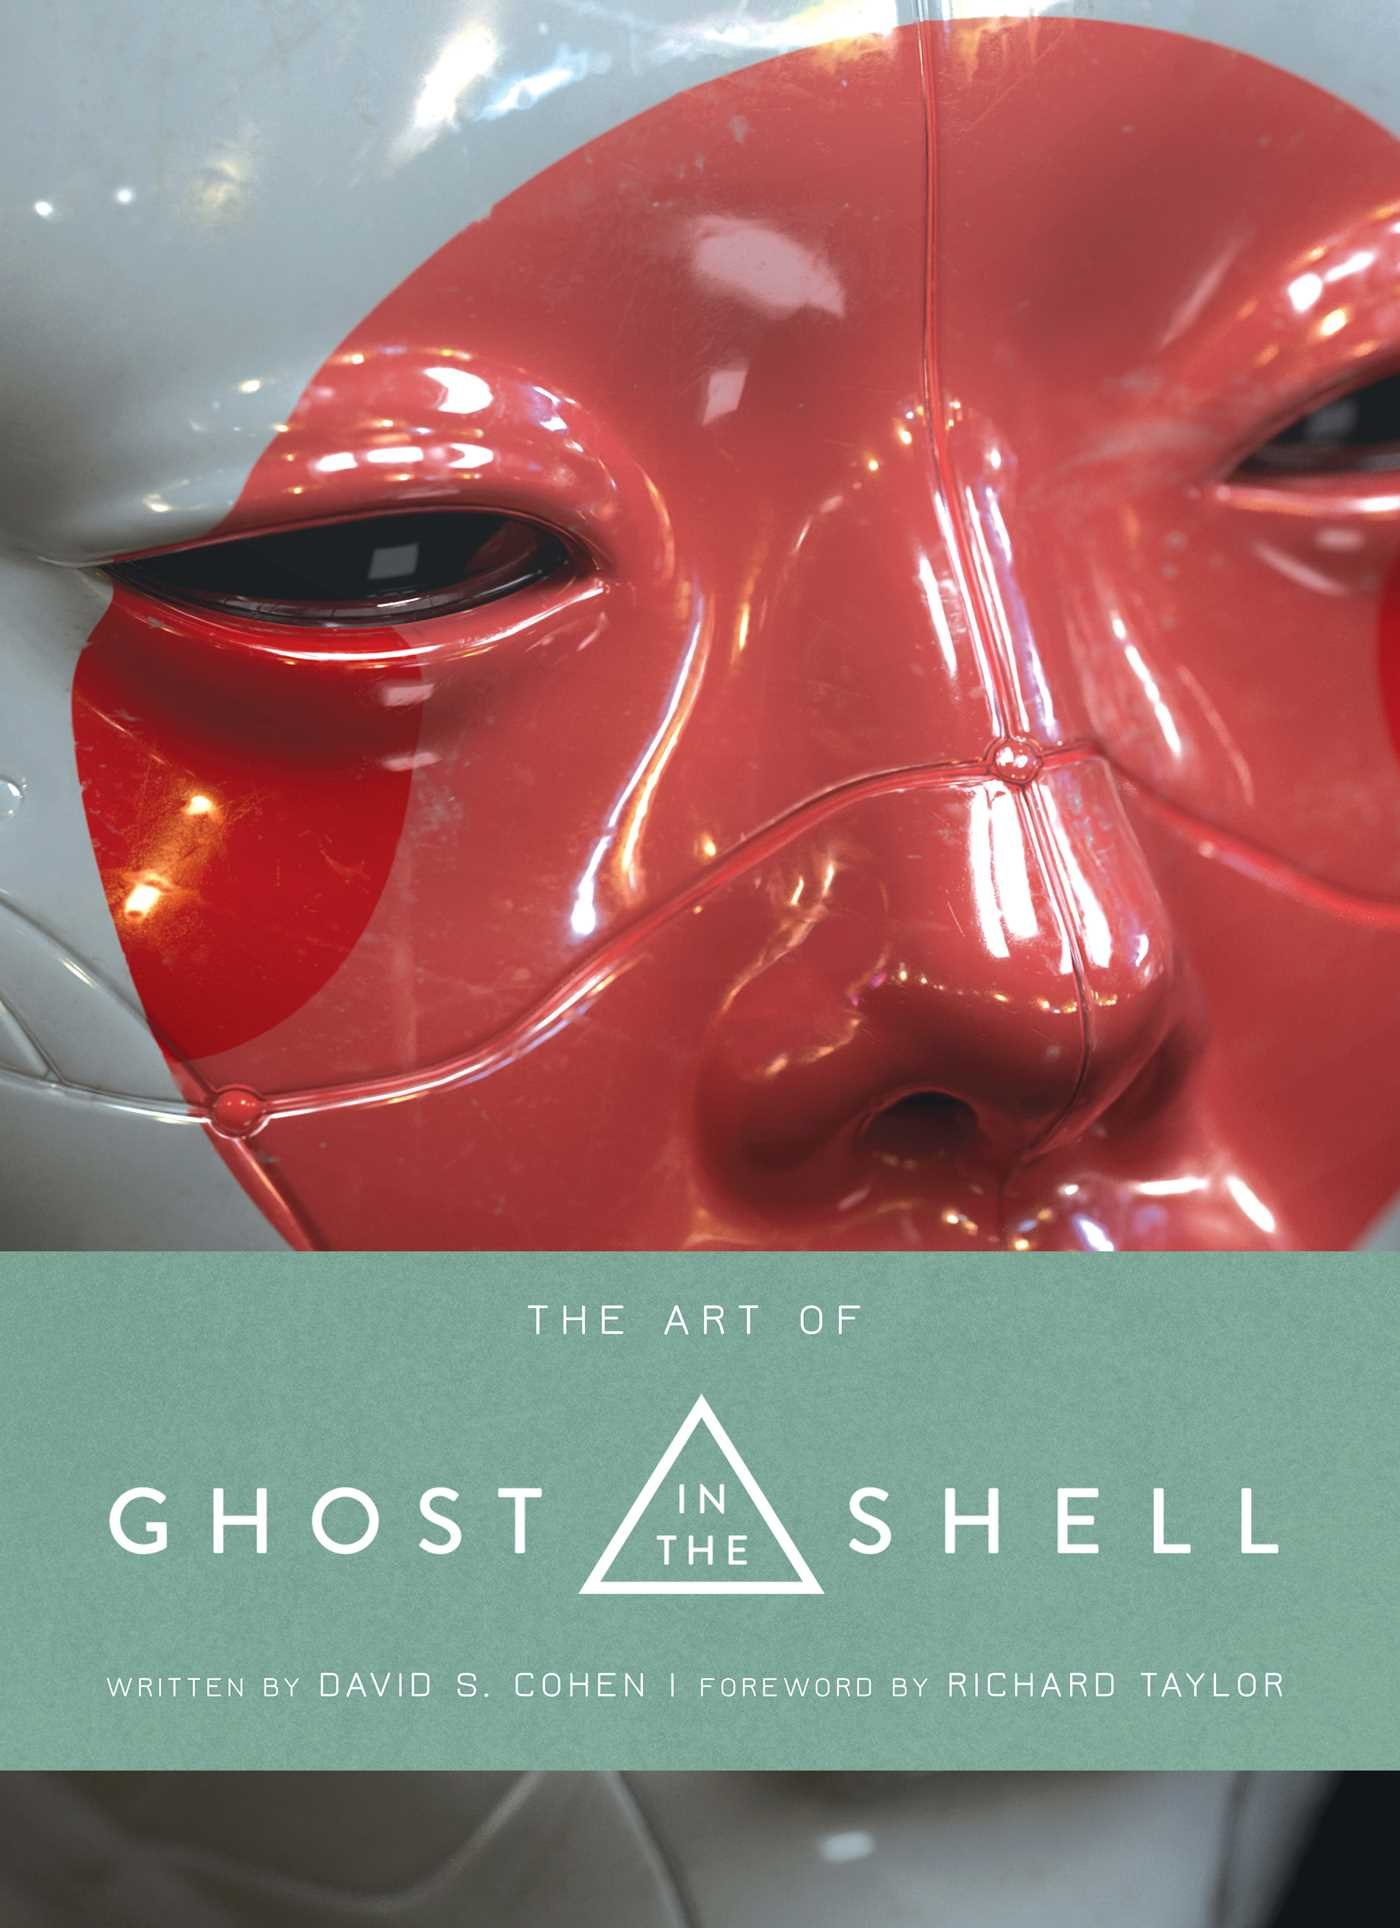 The Art of Ghost in the Shell (6 pics)